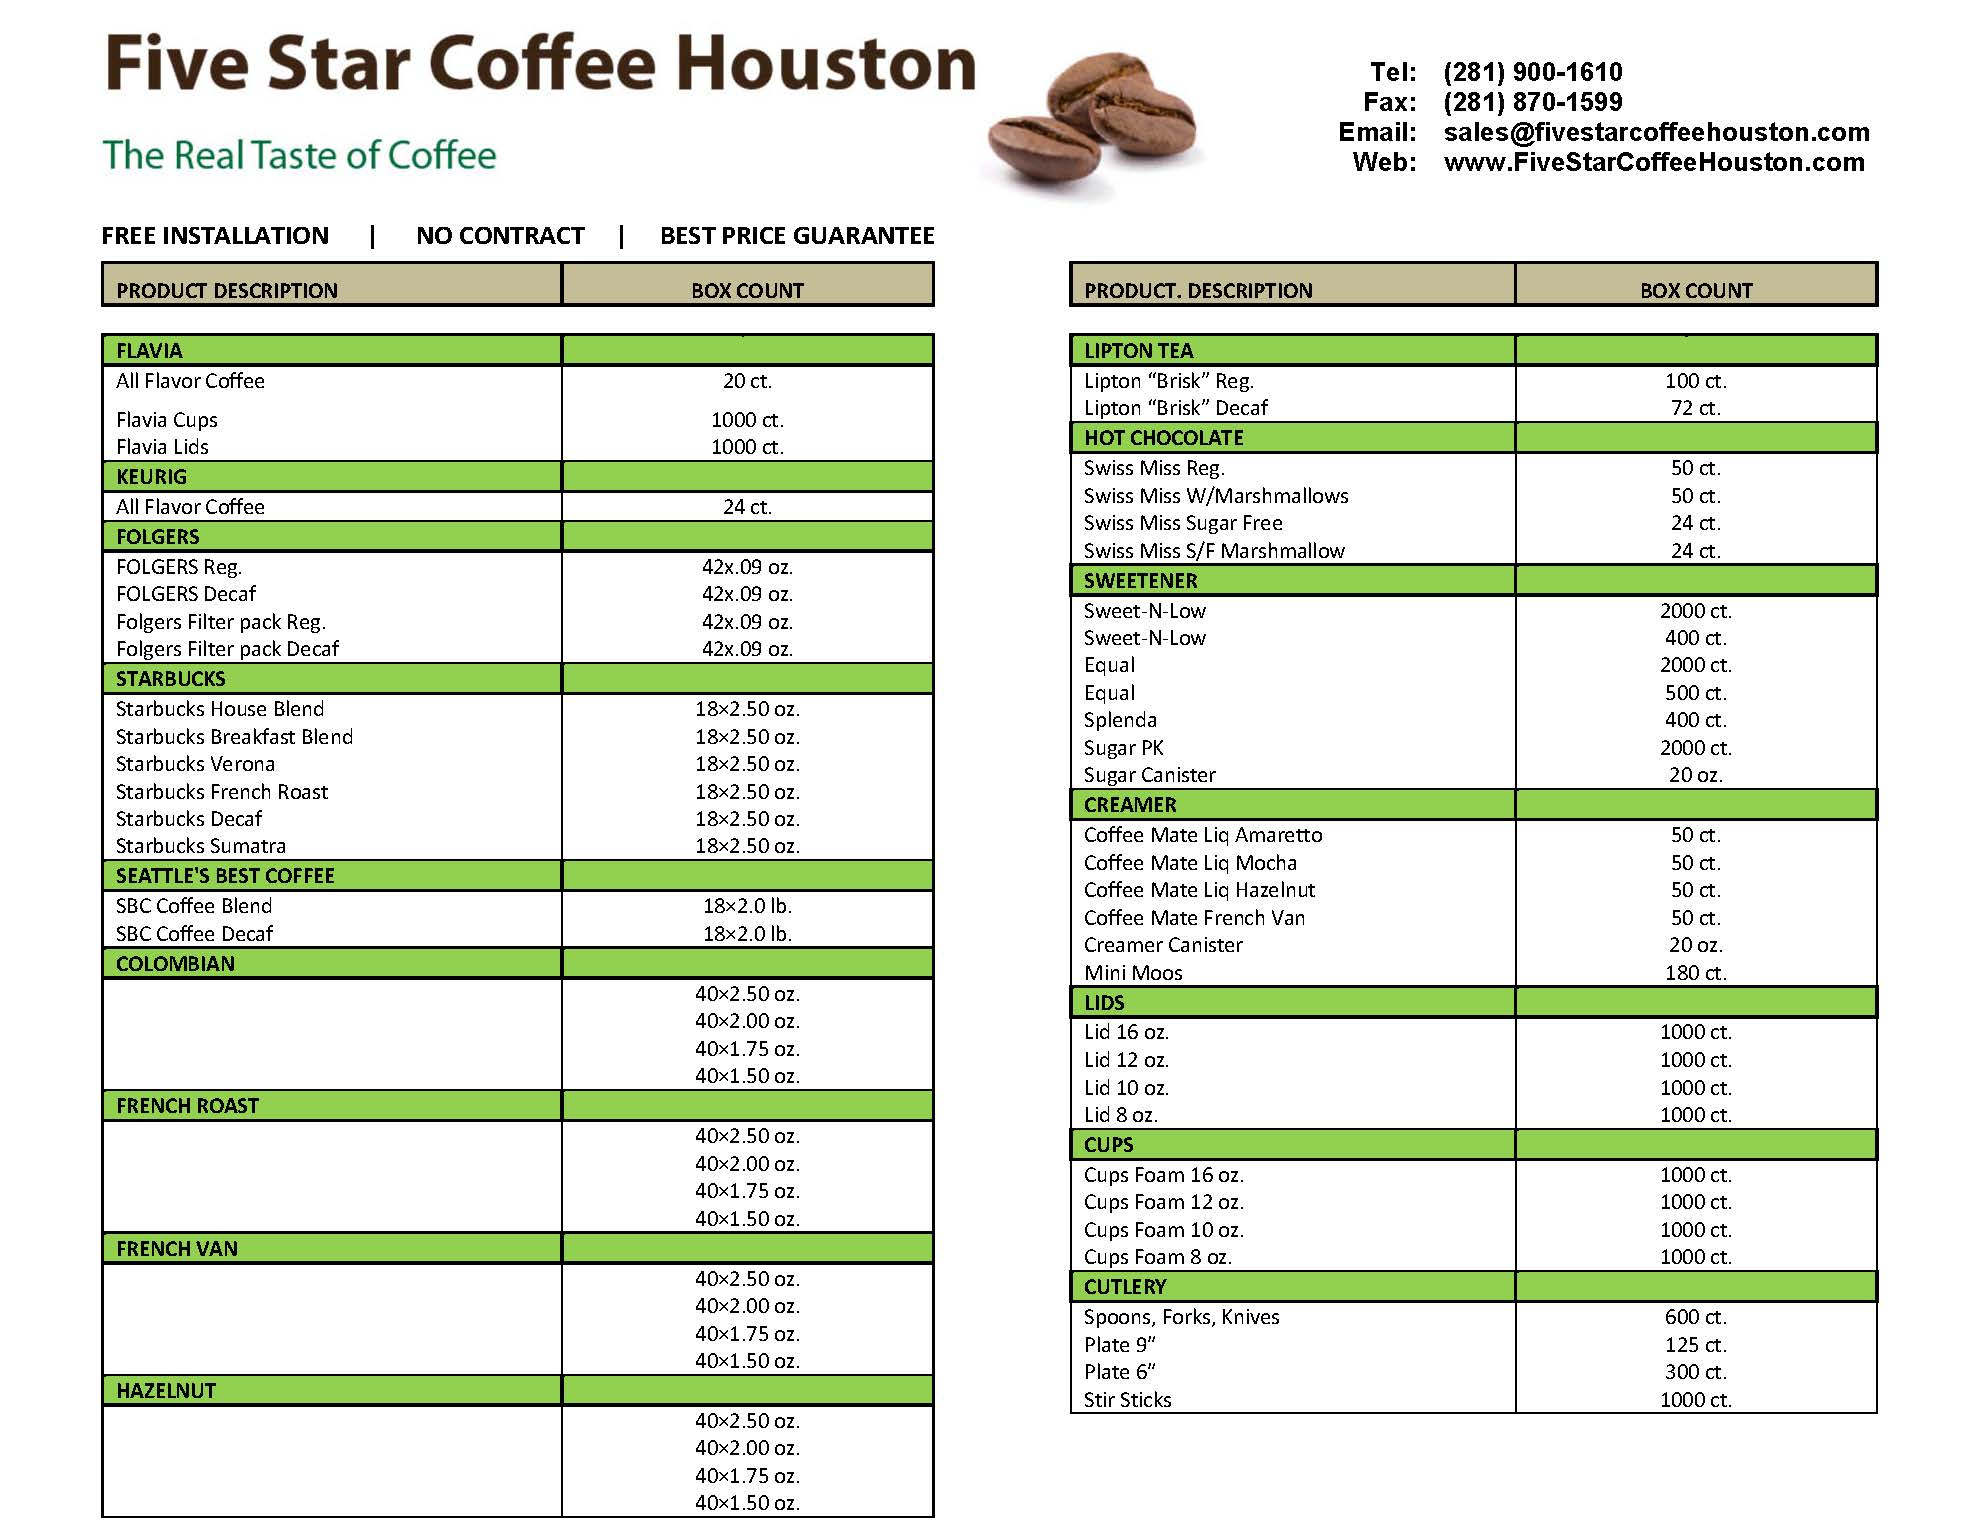 FIVE-STAR-COFFEE-HOUSTON-PRODUCT-LIST